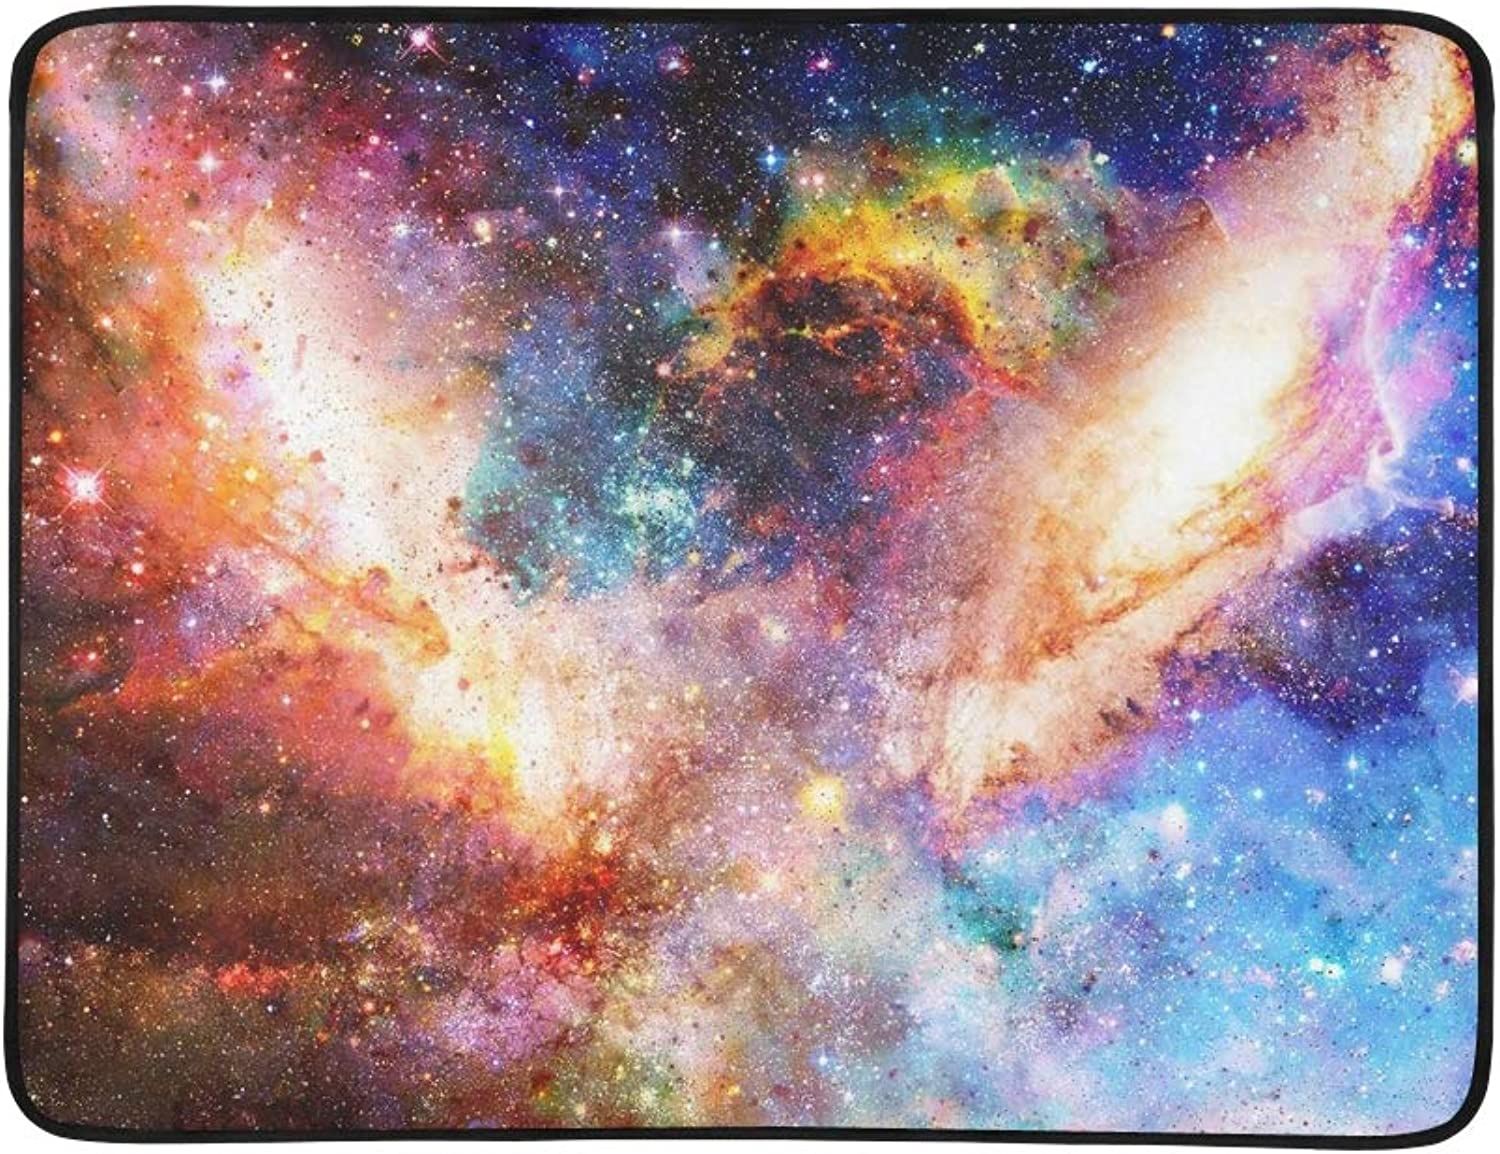 Cosmic Galaxy Stars color Cosmic Abstract Portable and Foldable Blanket Mat 60x78 Inch Handy Mat for Camping Picnic Beach Indoor Outdoor Travel